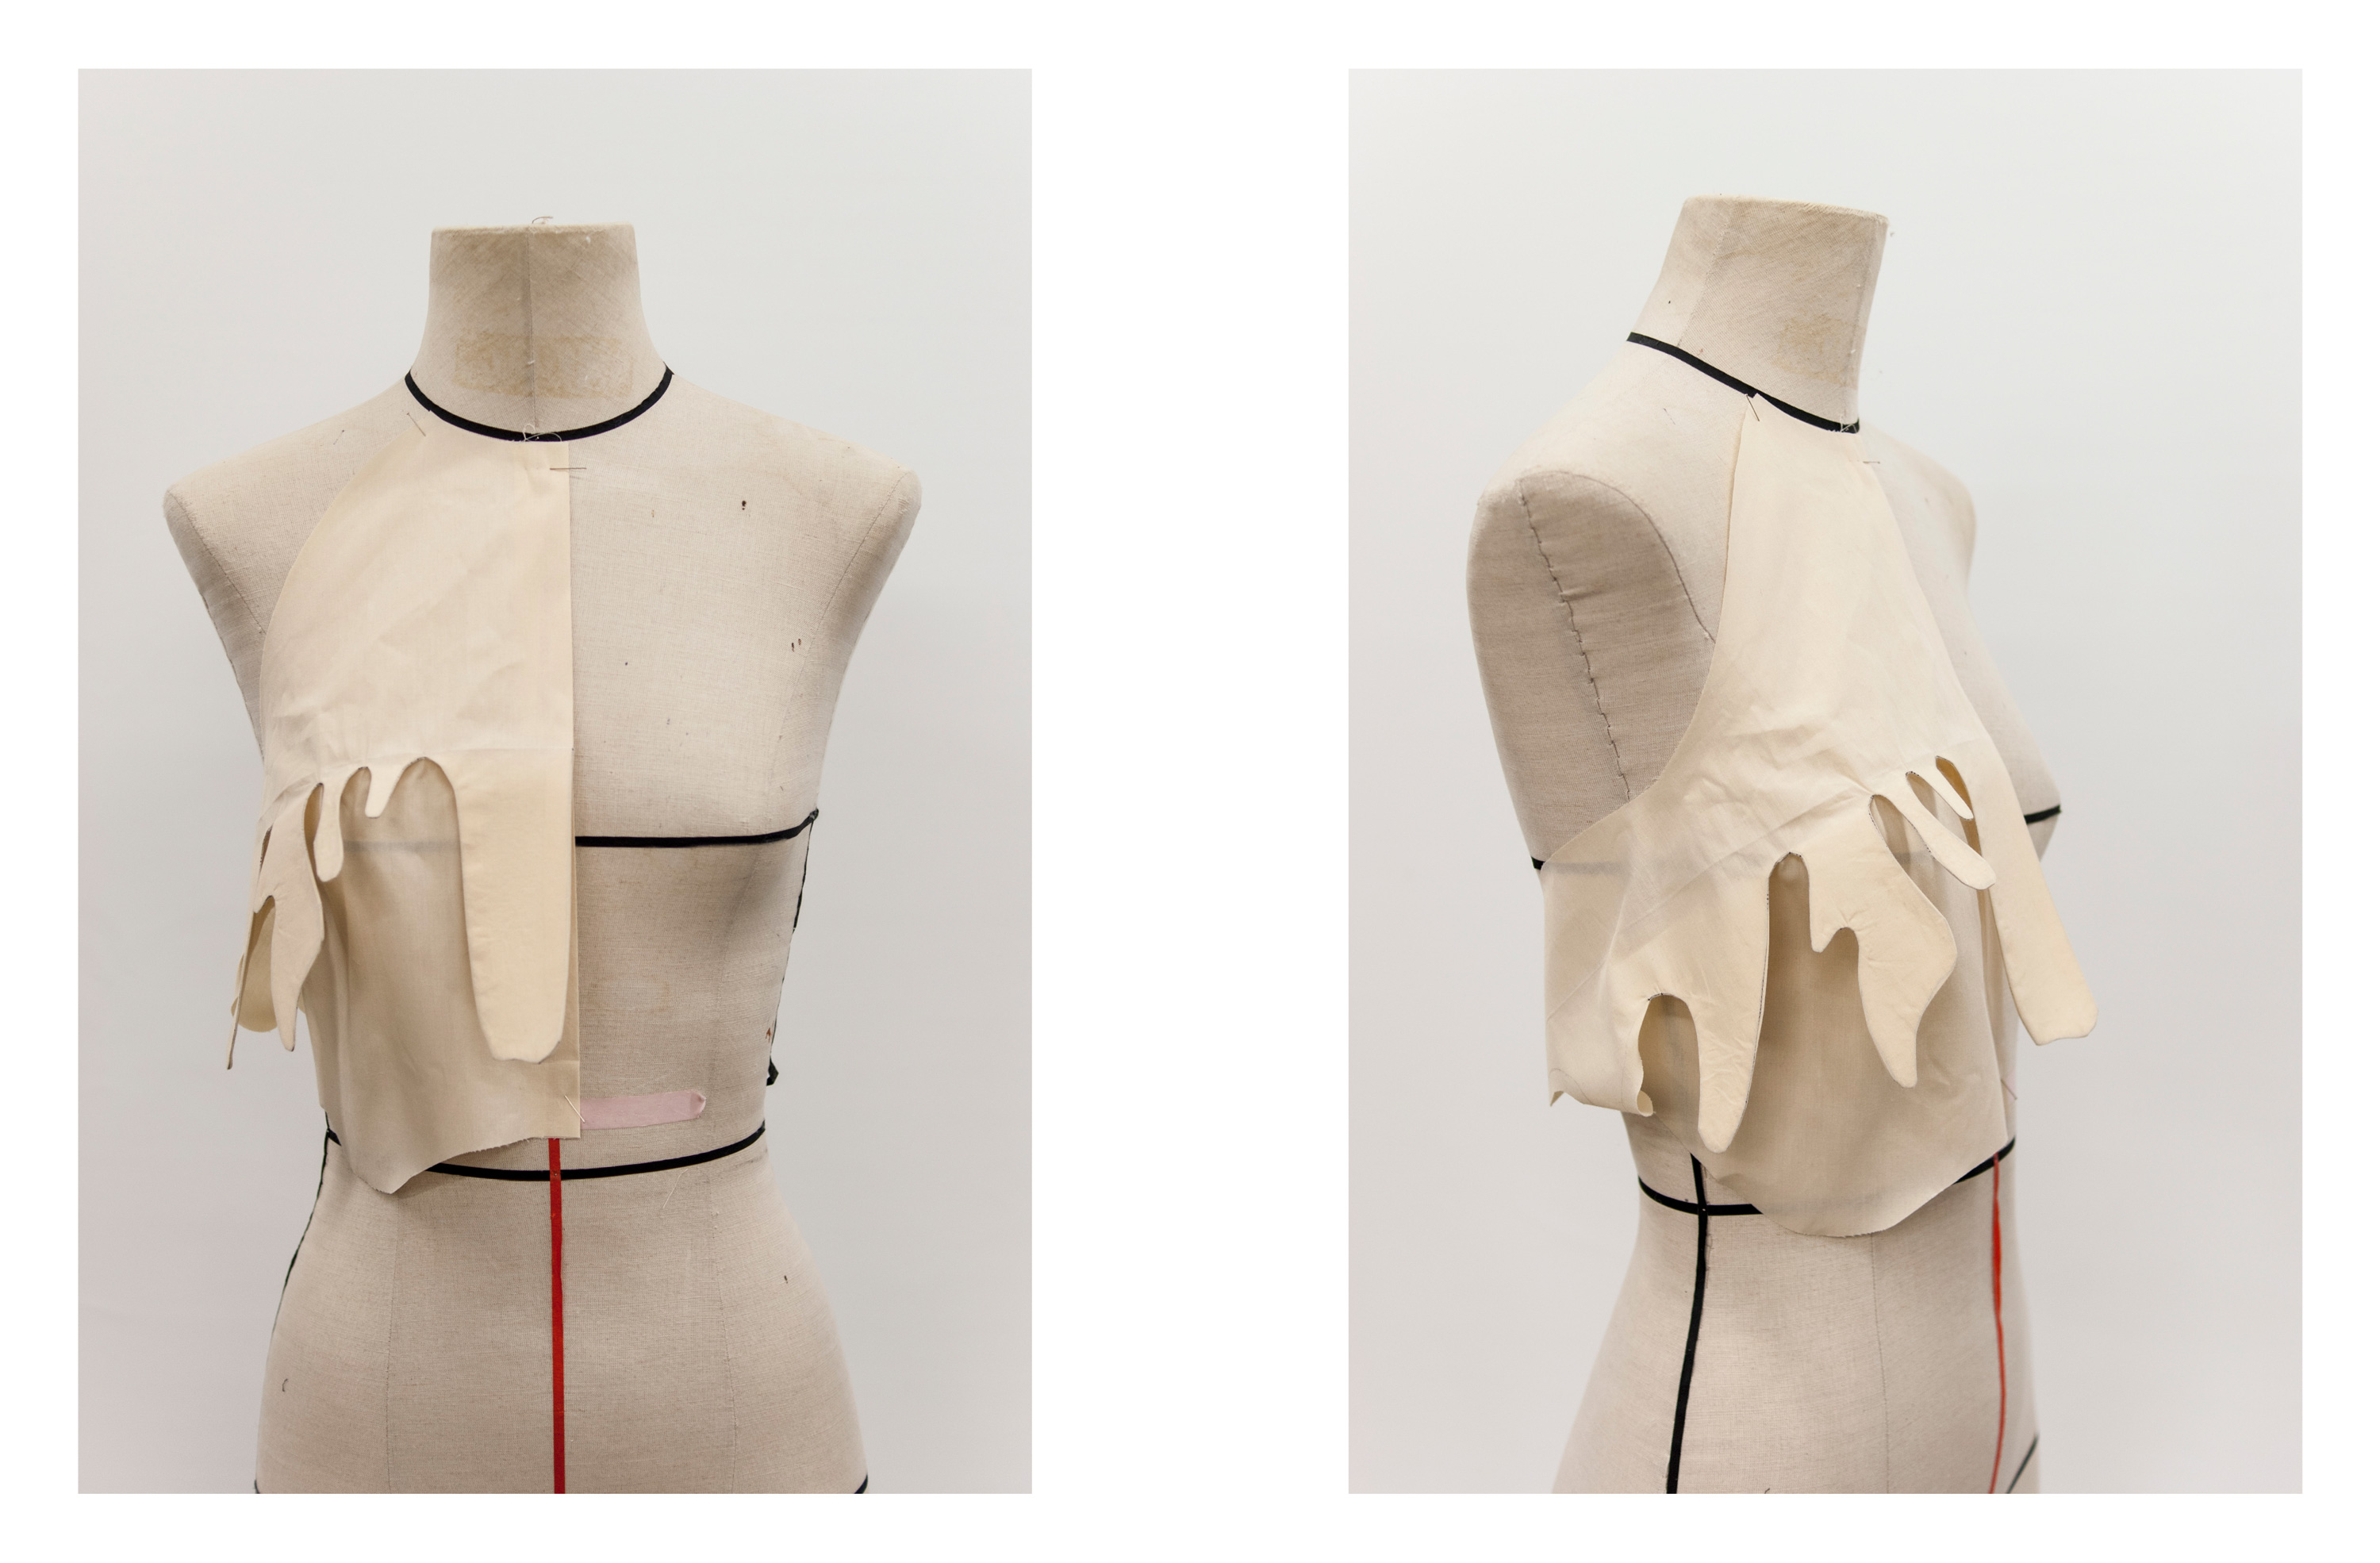 front and front-side view of a partial muslin/prototype for the surrealist blouse - the seam at the bust extends out in a drip shape